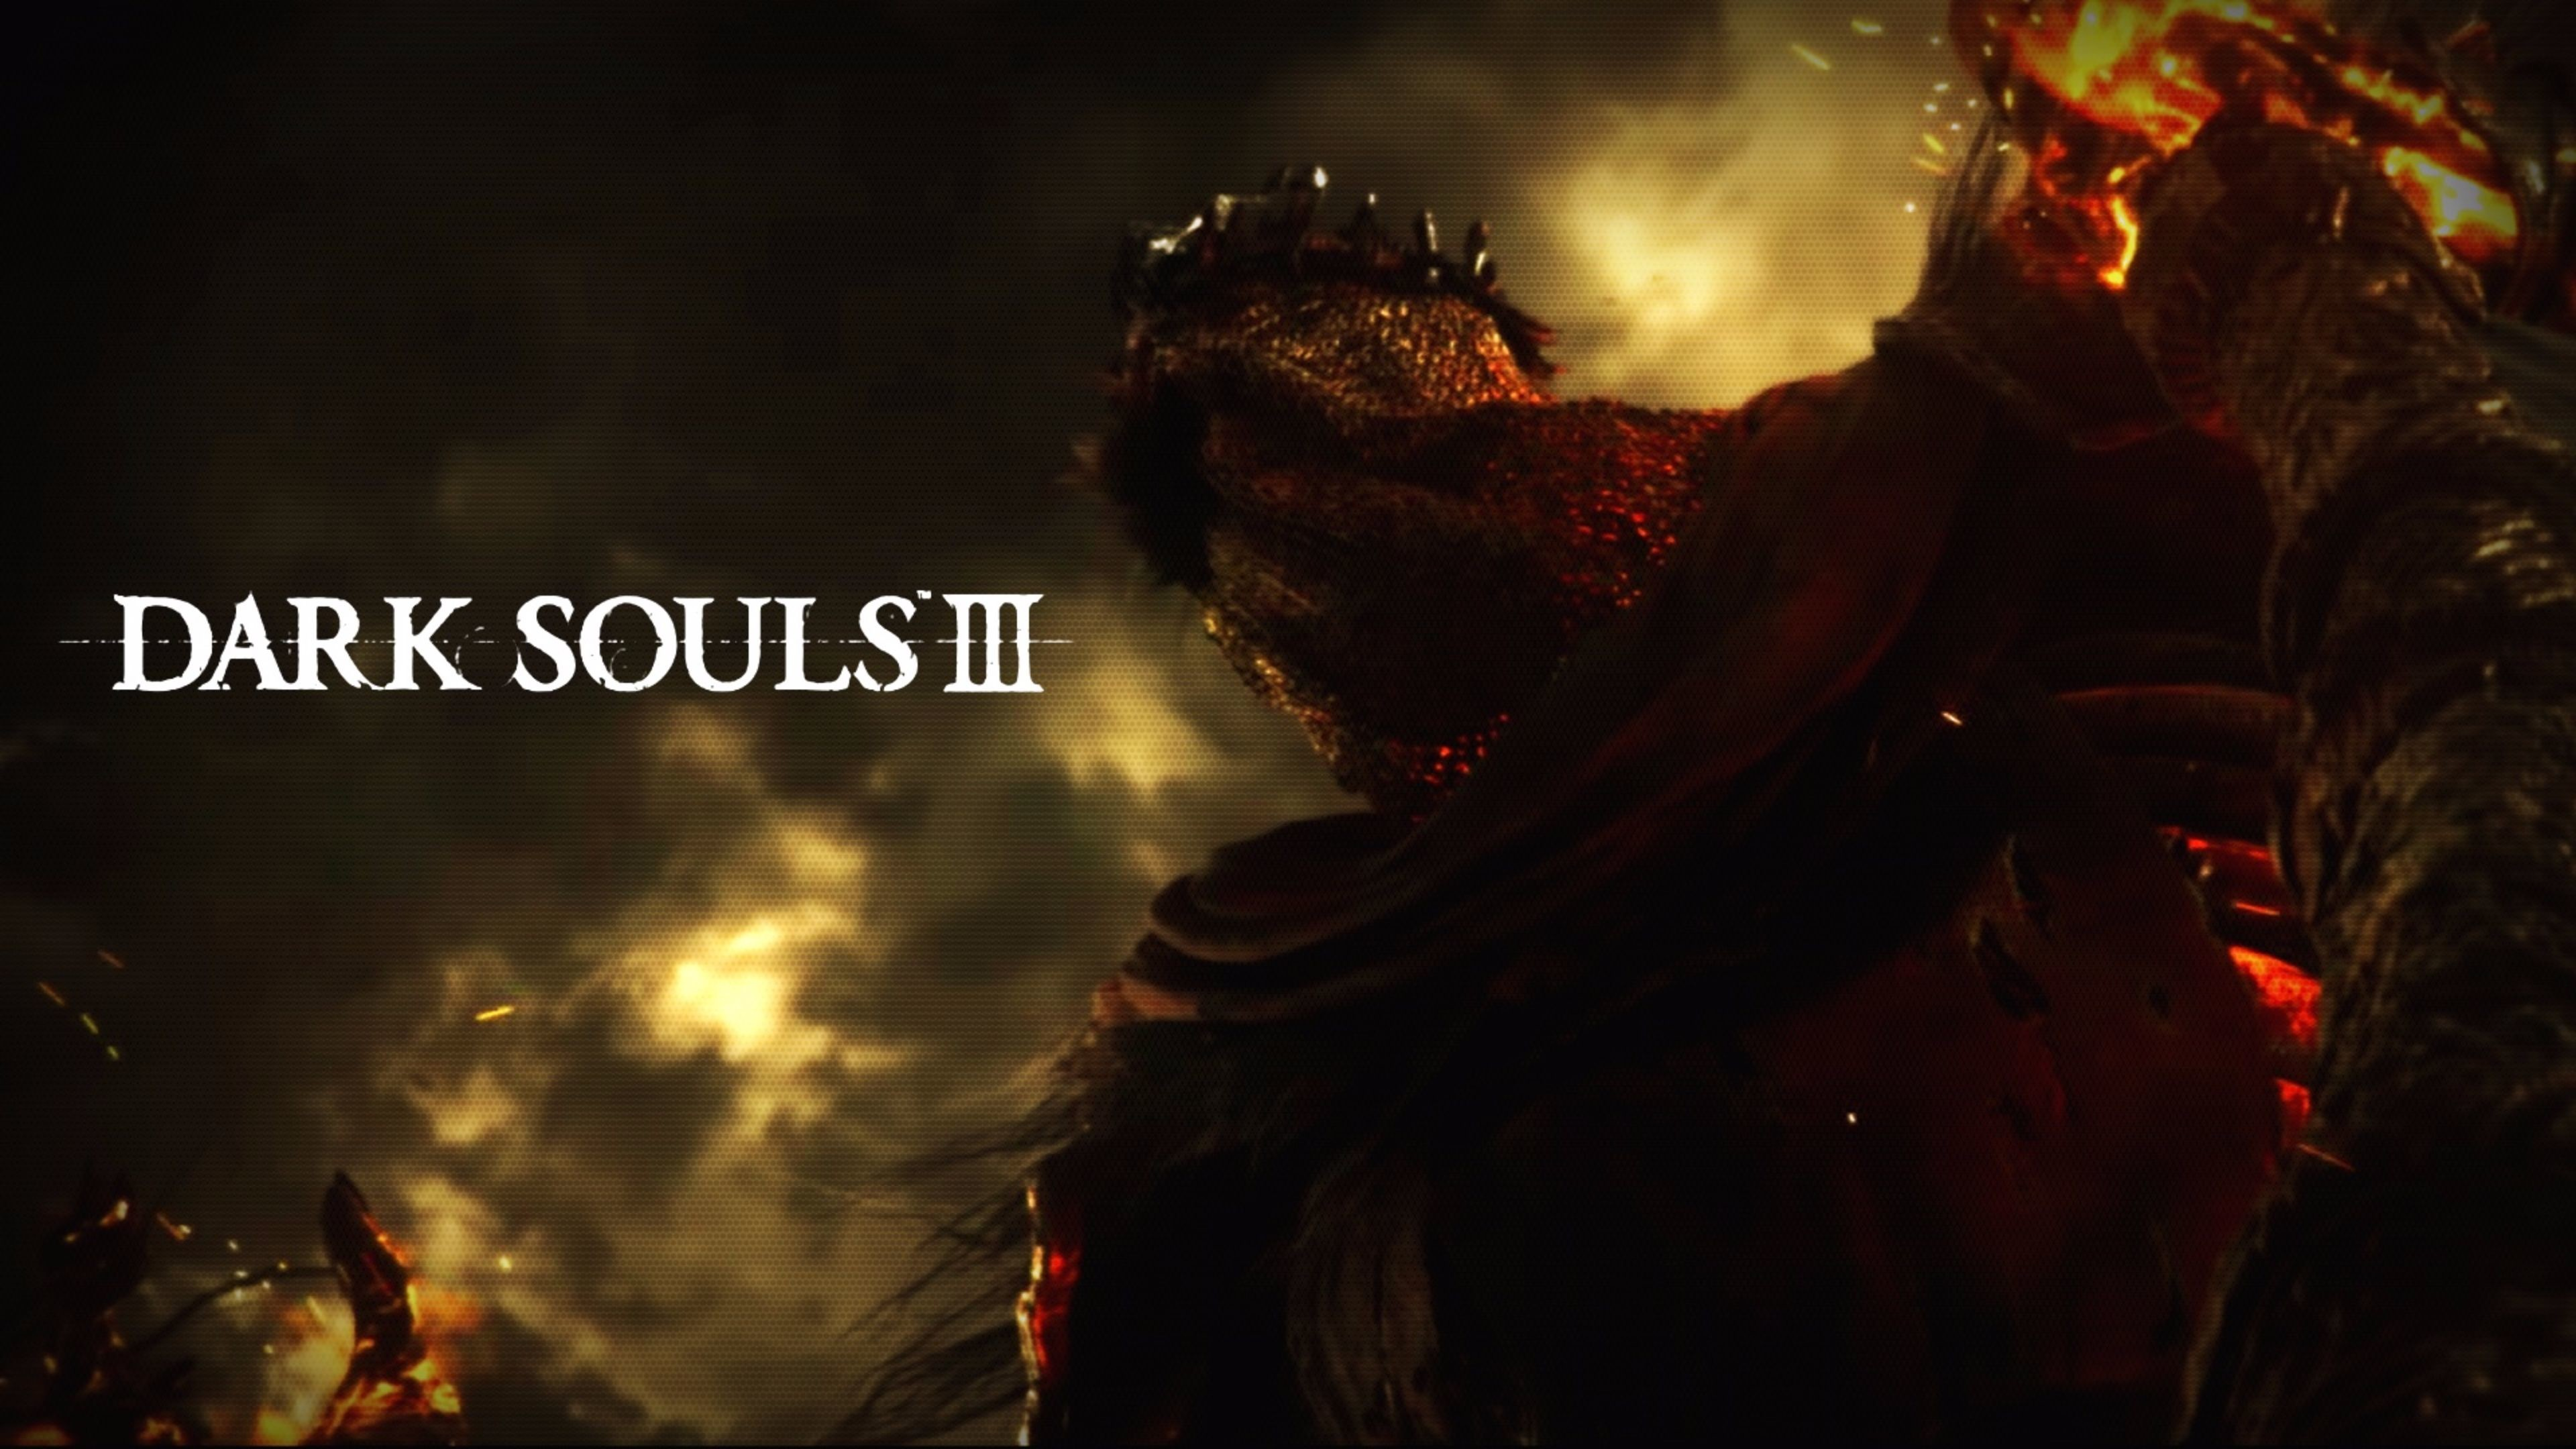 3840x2160 Dark Souls 3 4K UHD Wallpaper